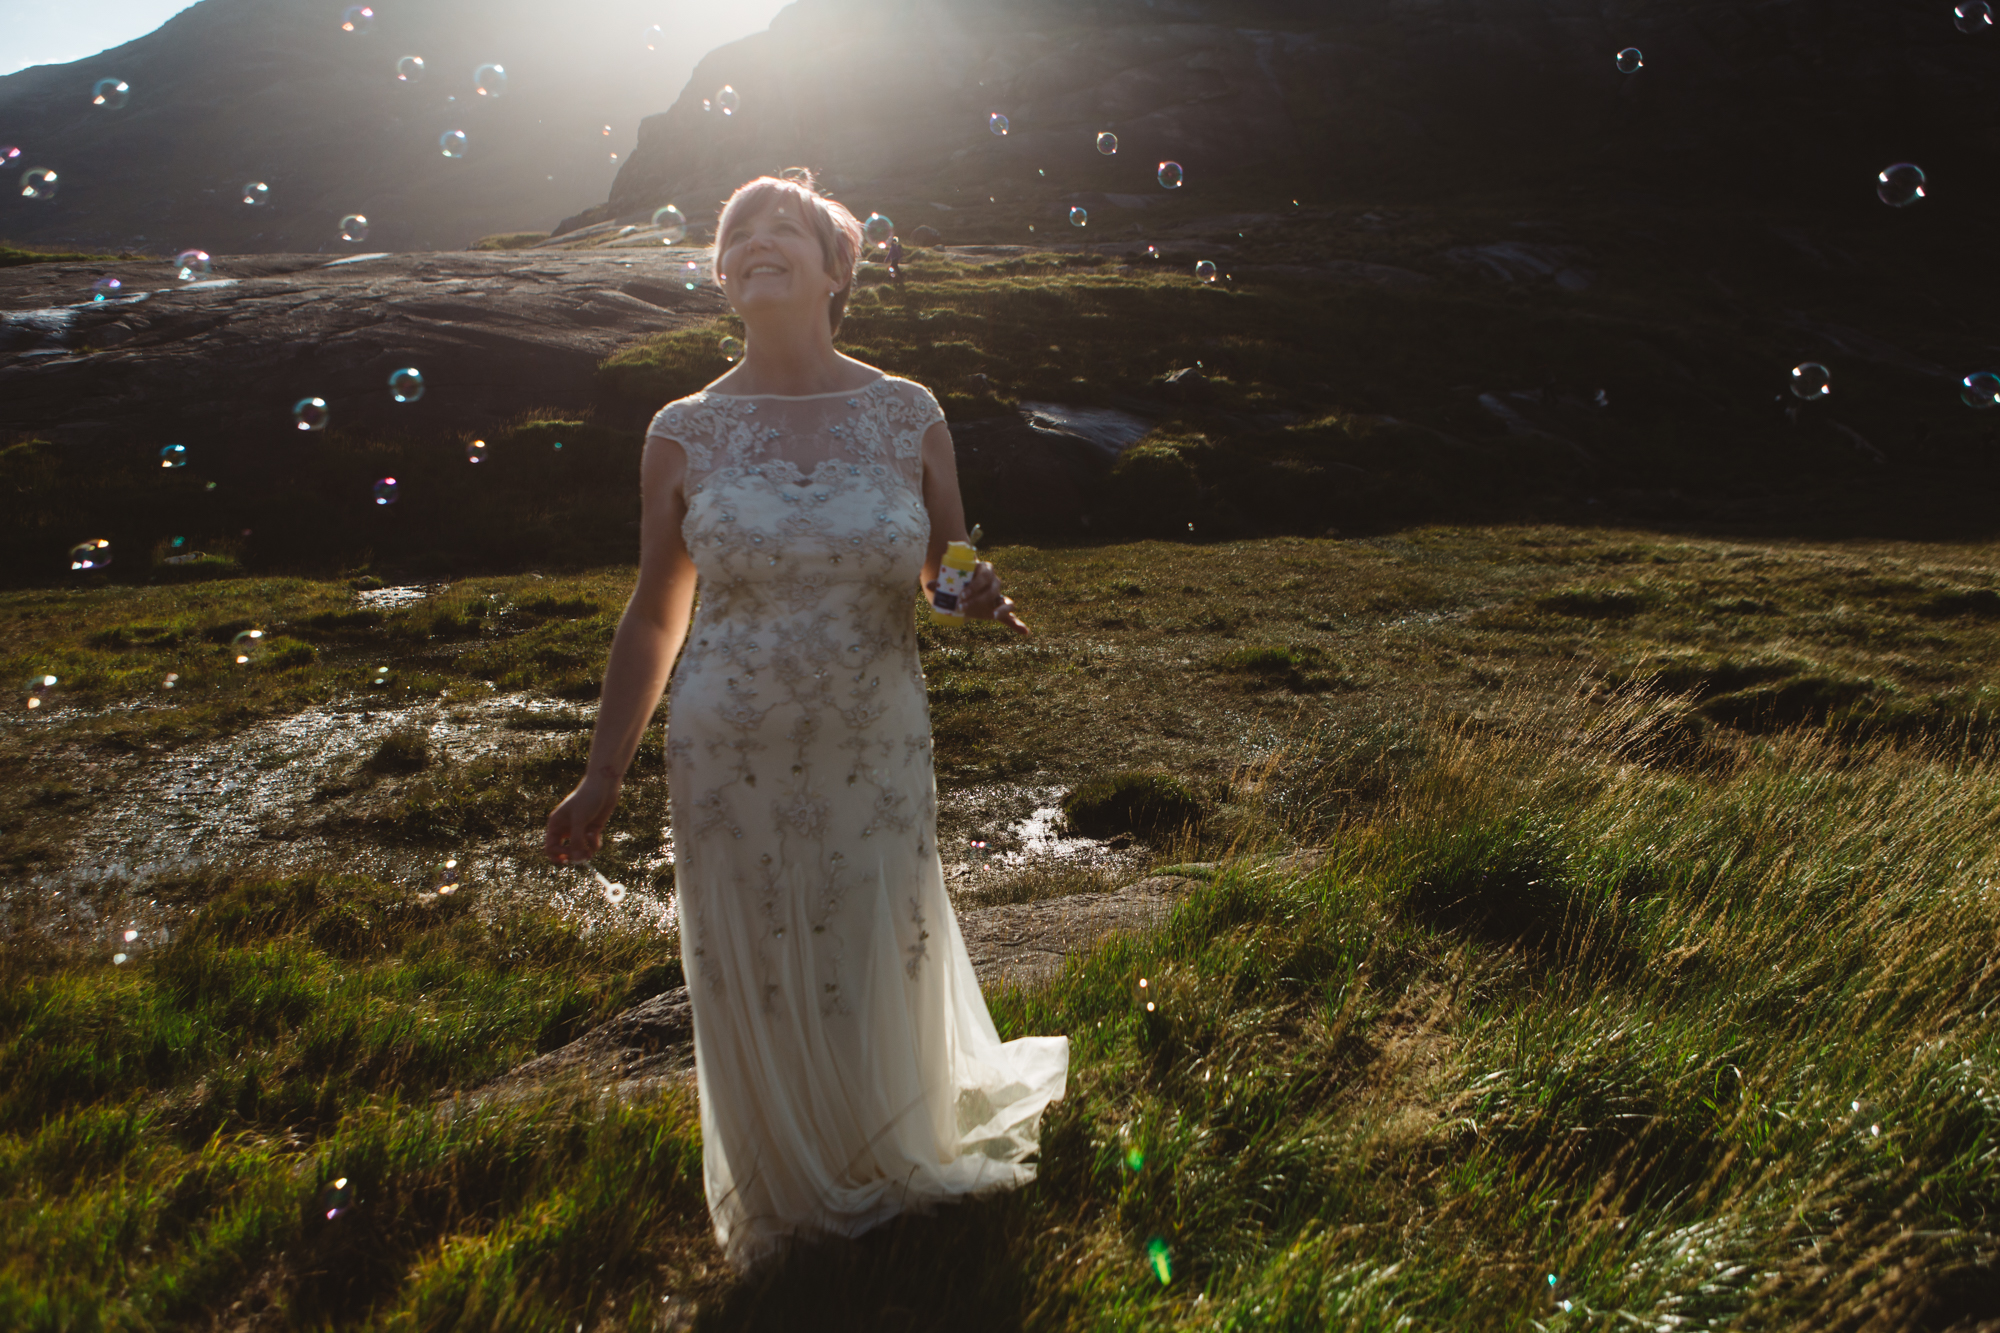 Backlit bride surrounded by bubbles at Loch Coruisk